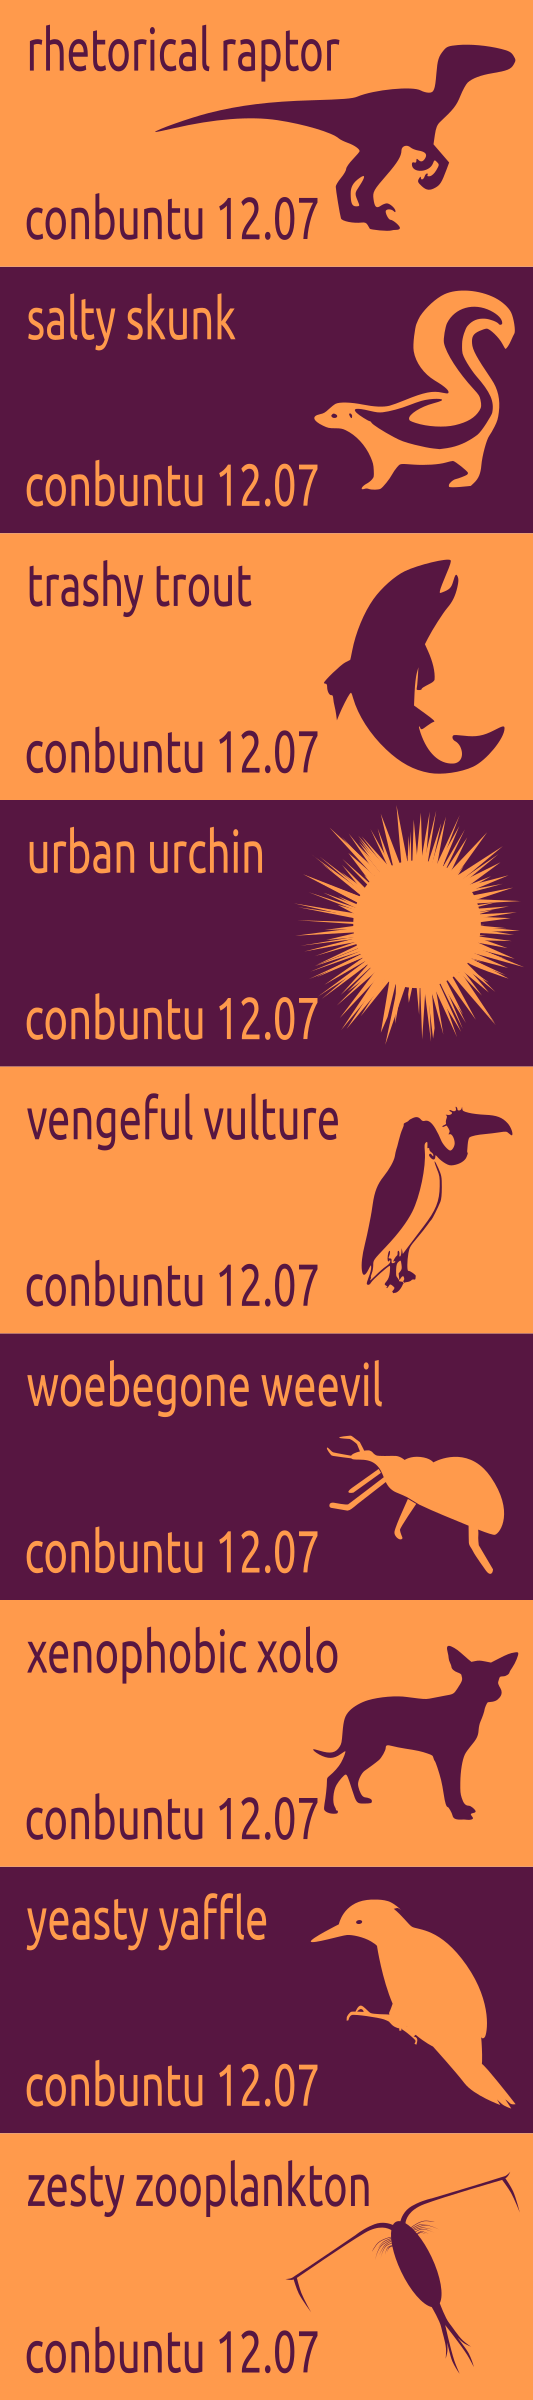 Future Ubuntu Releases by dear_theophilus